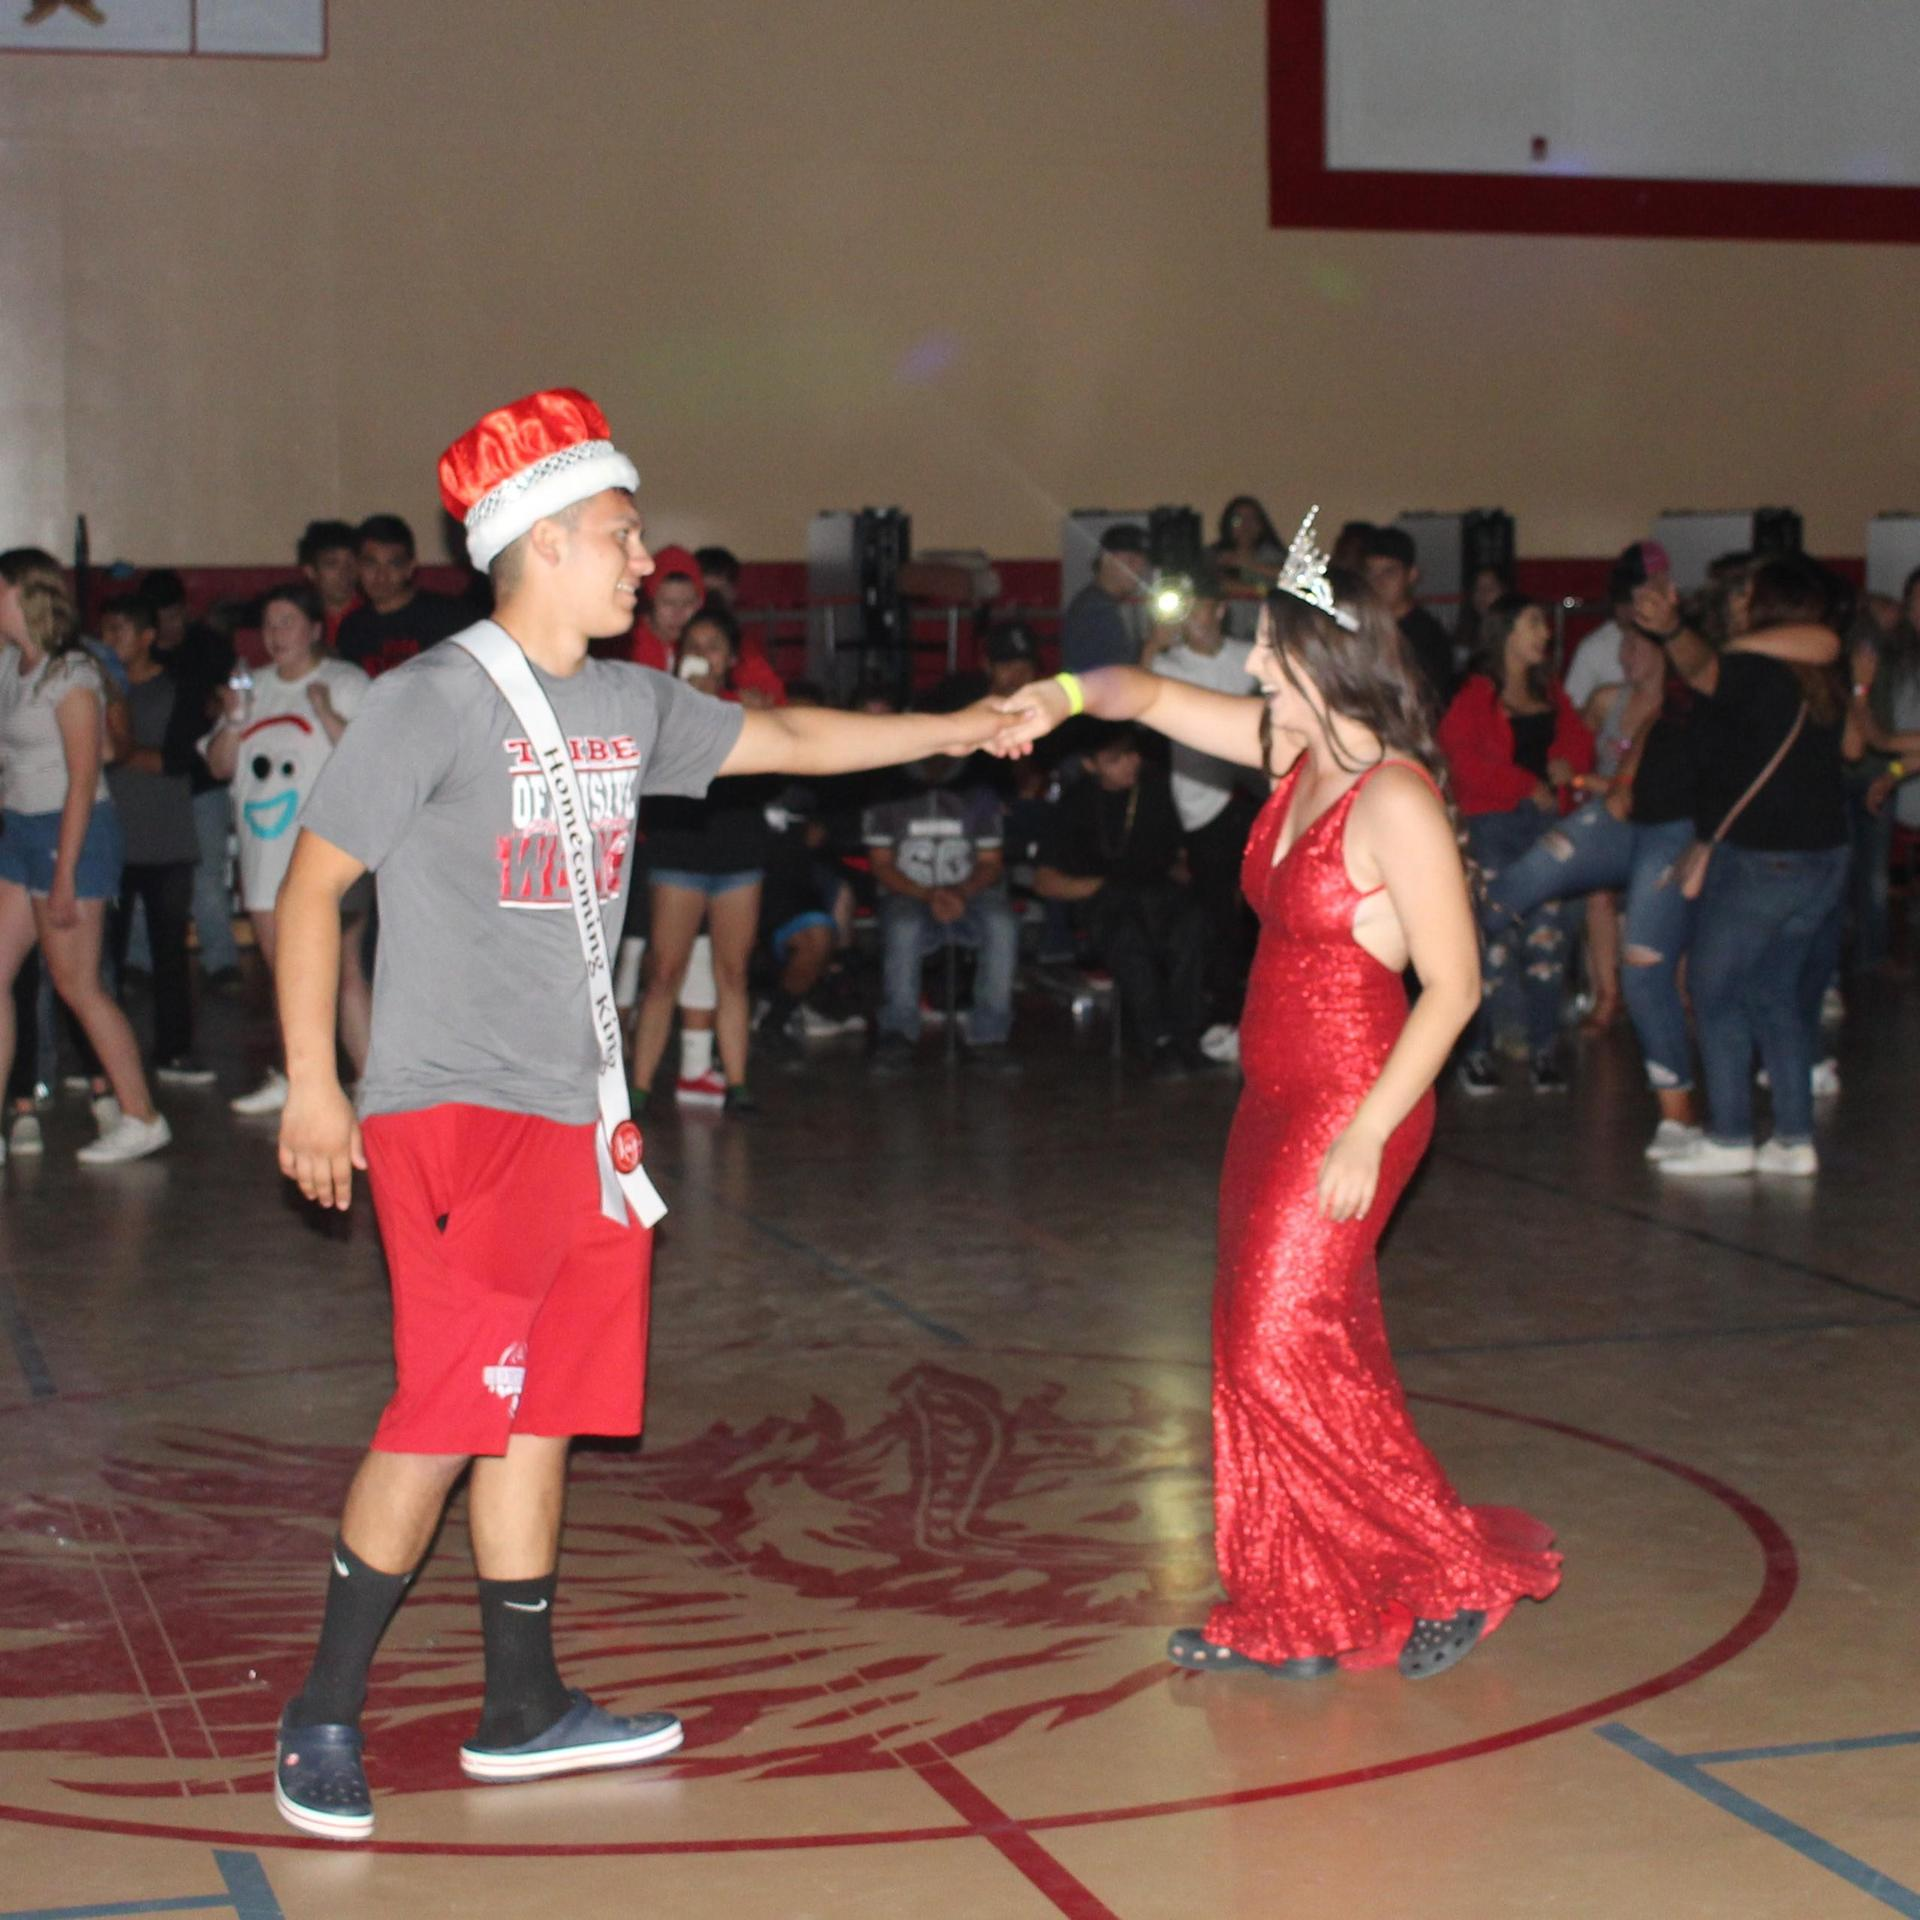 Student at the Homecoming dance